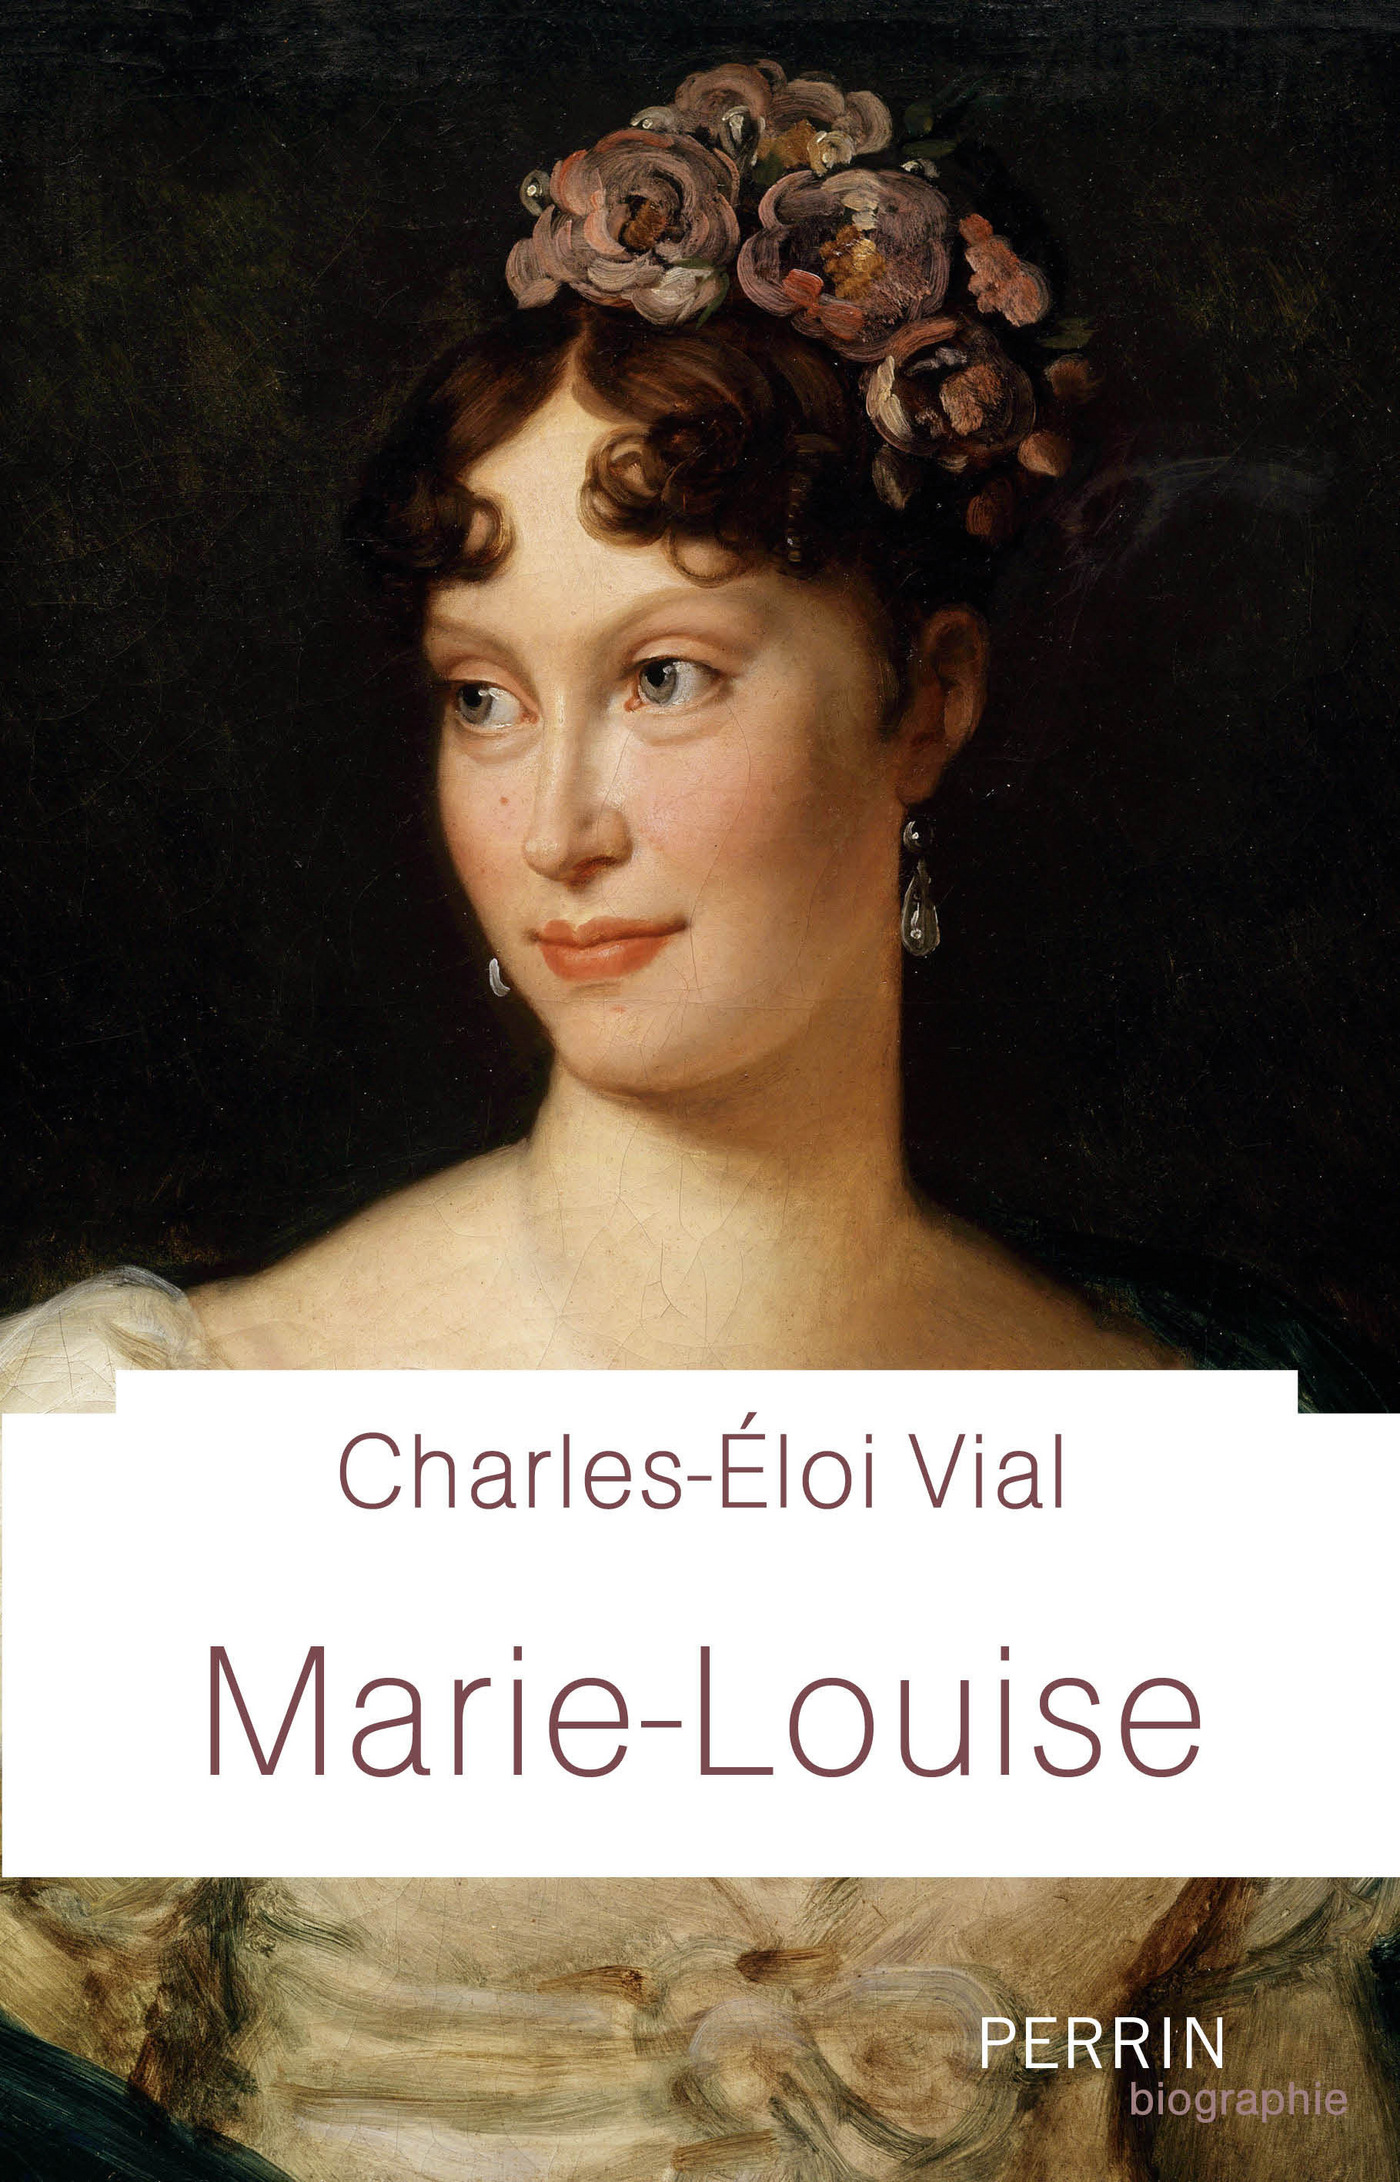 Marie-Louise